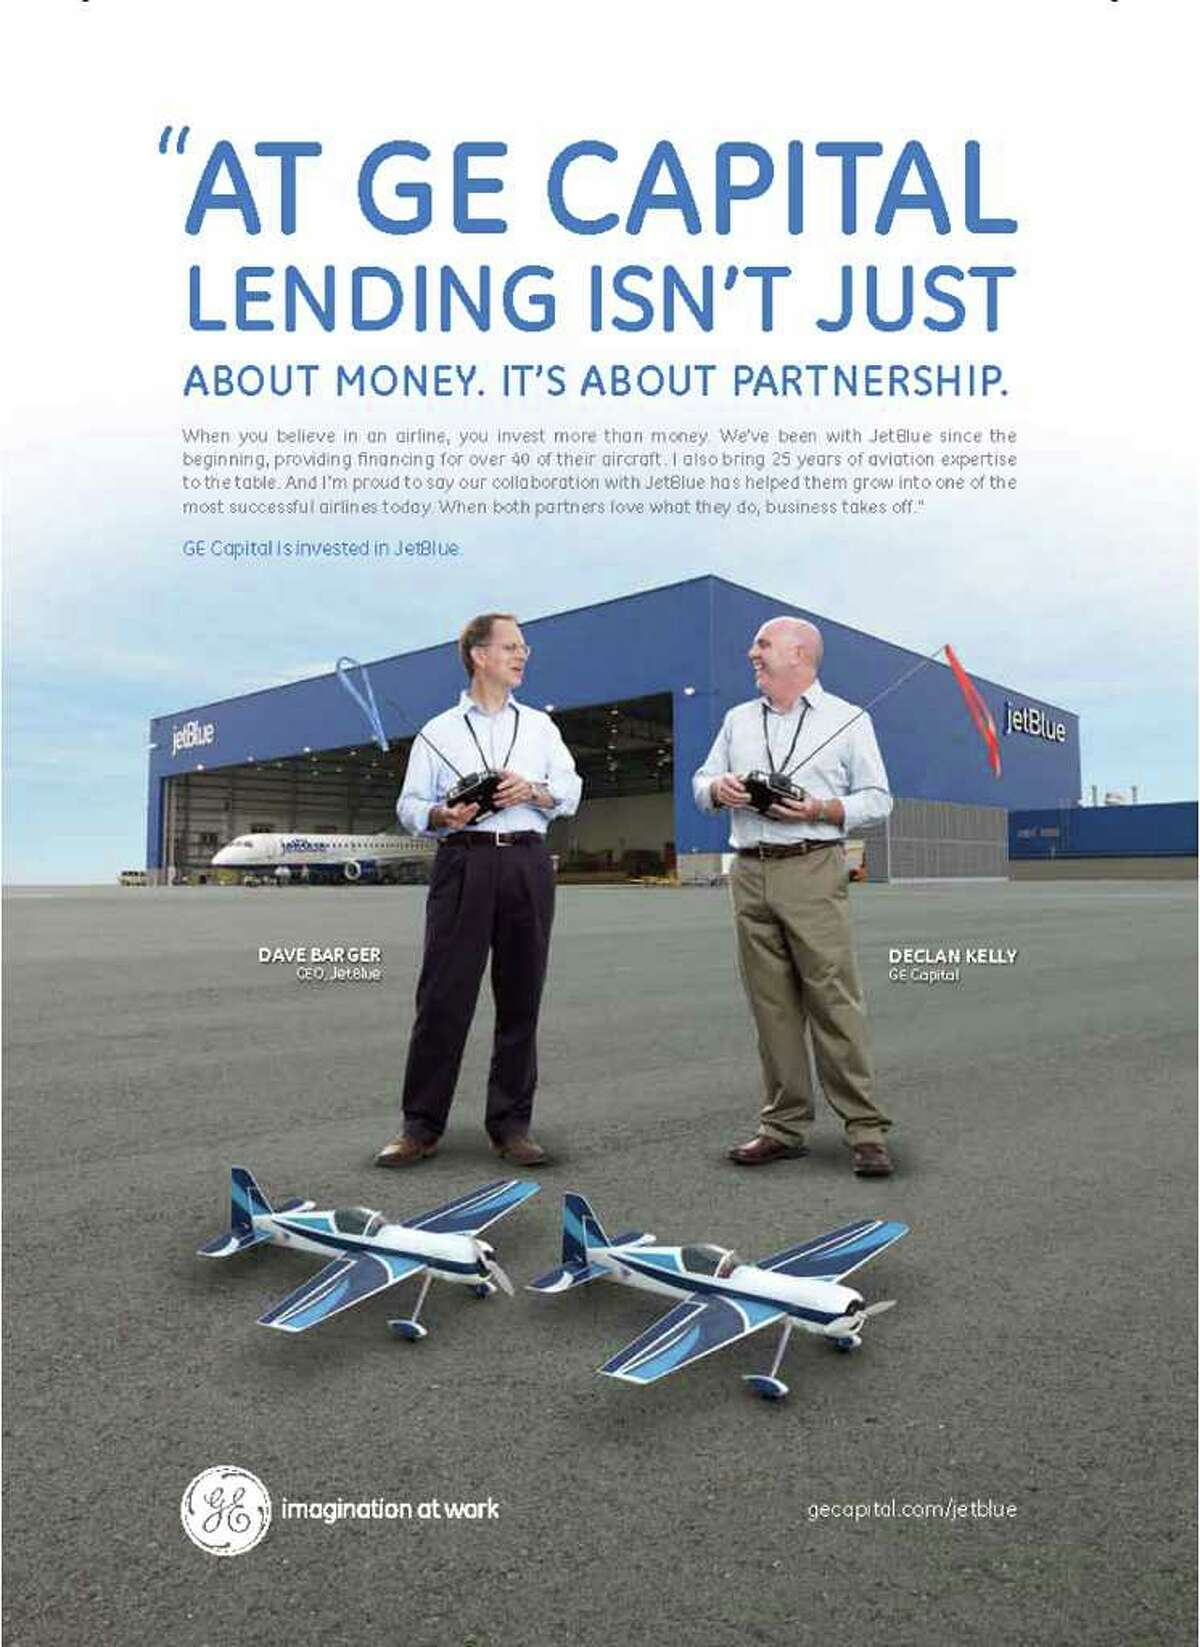 Copy of a print ad from GE Capital's new awareness campaign for its business lending and leasing services.